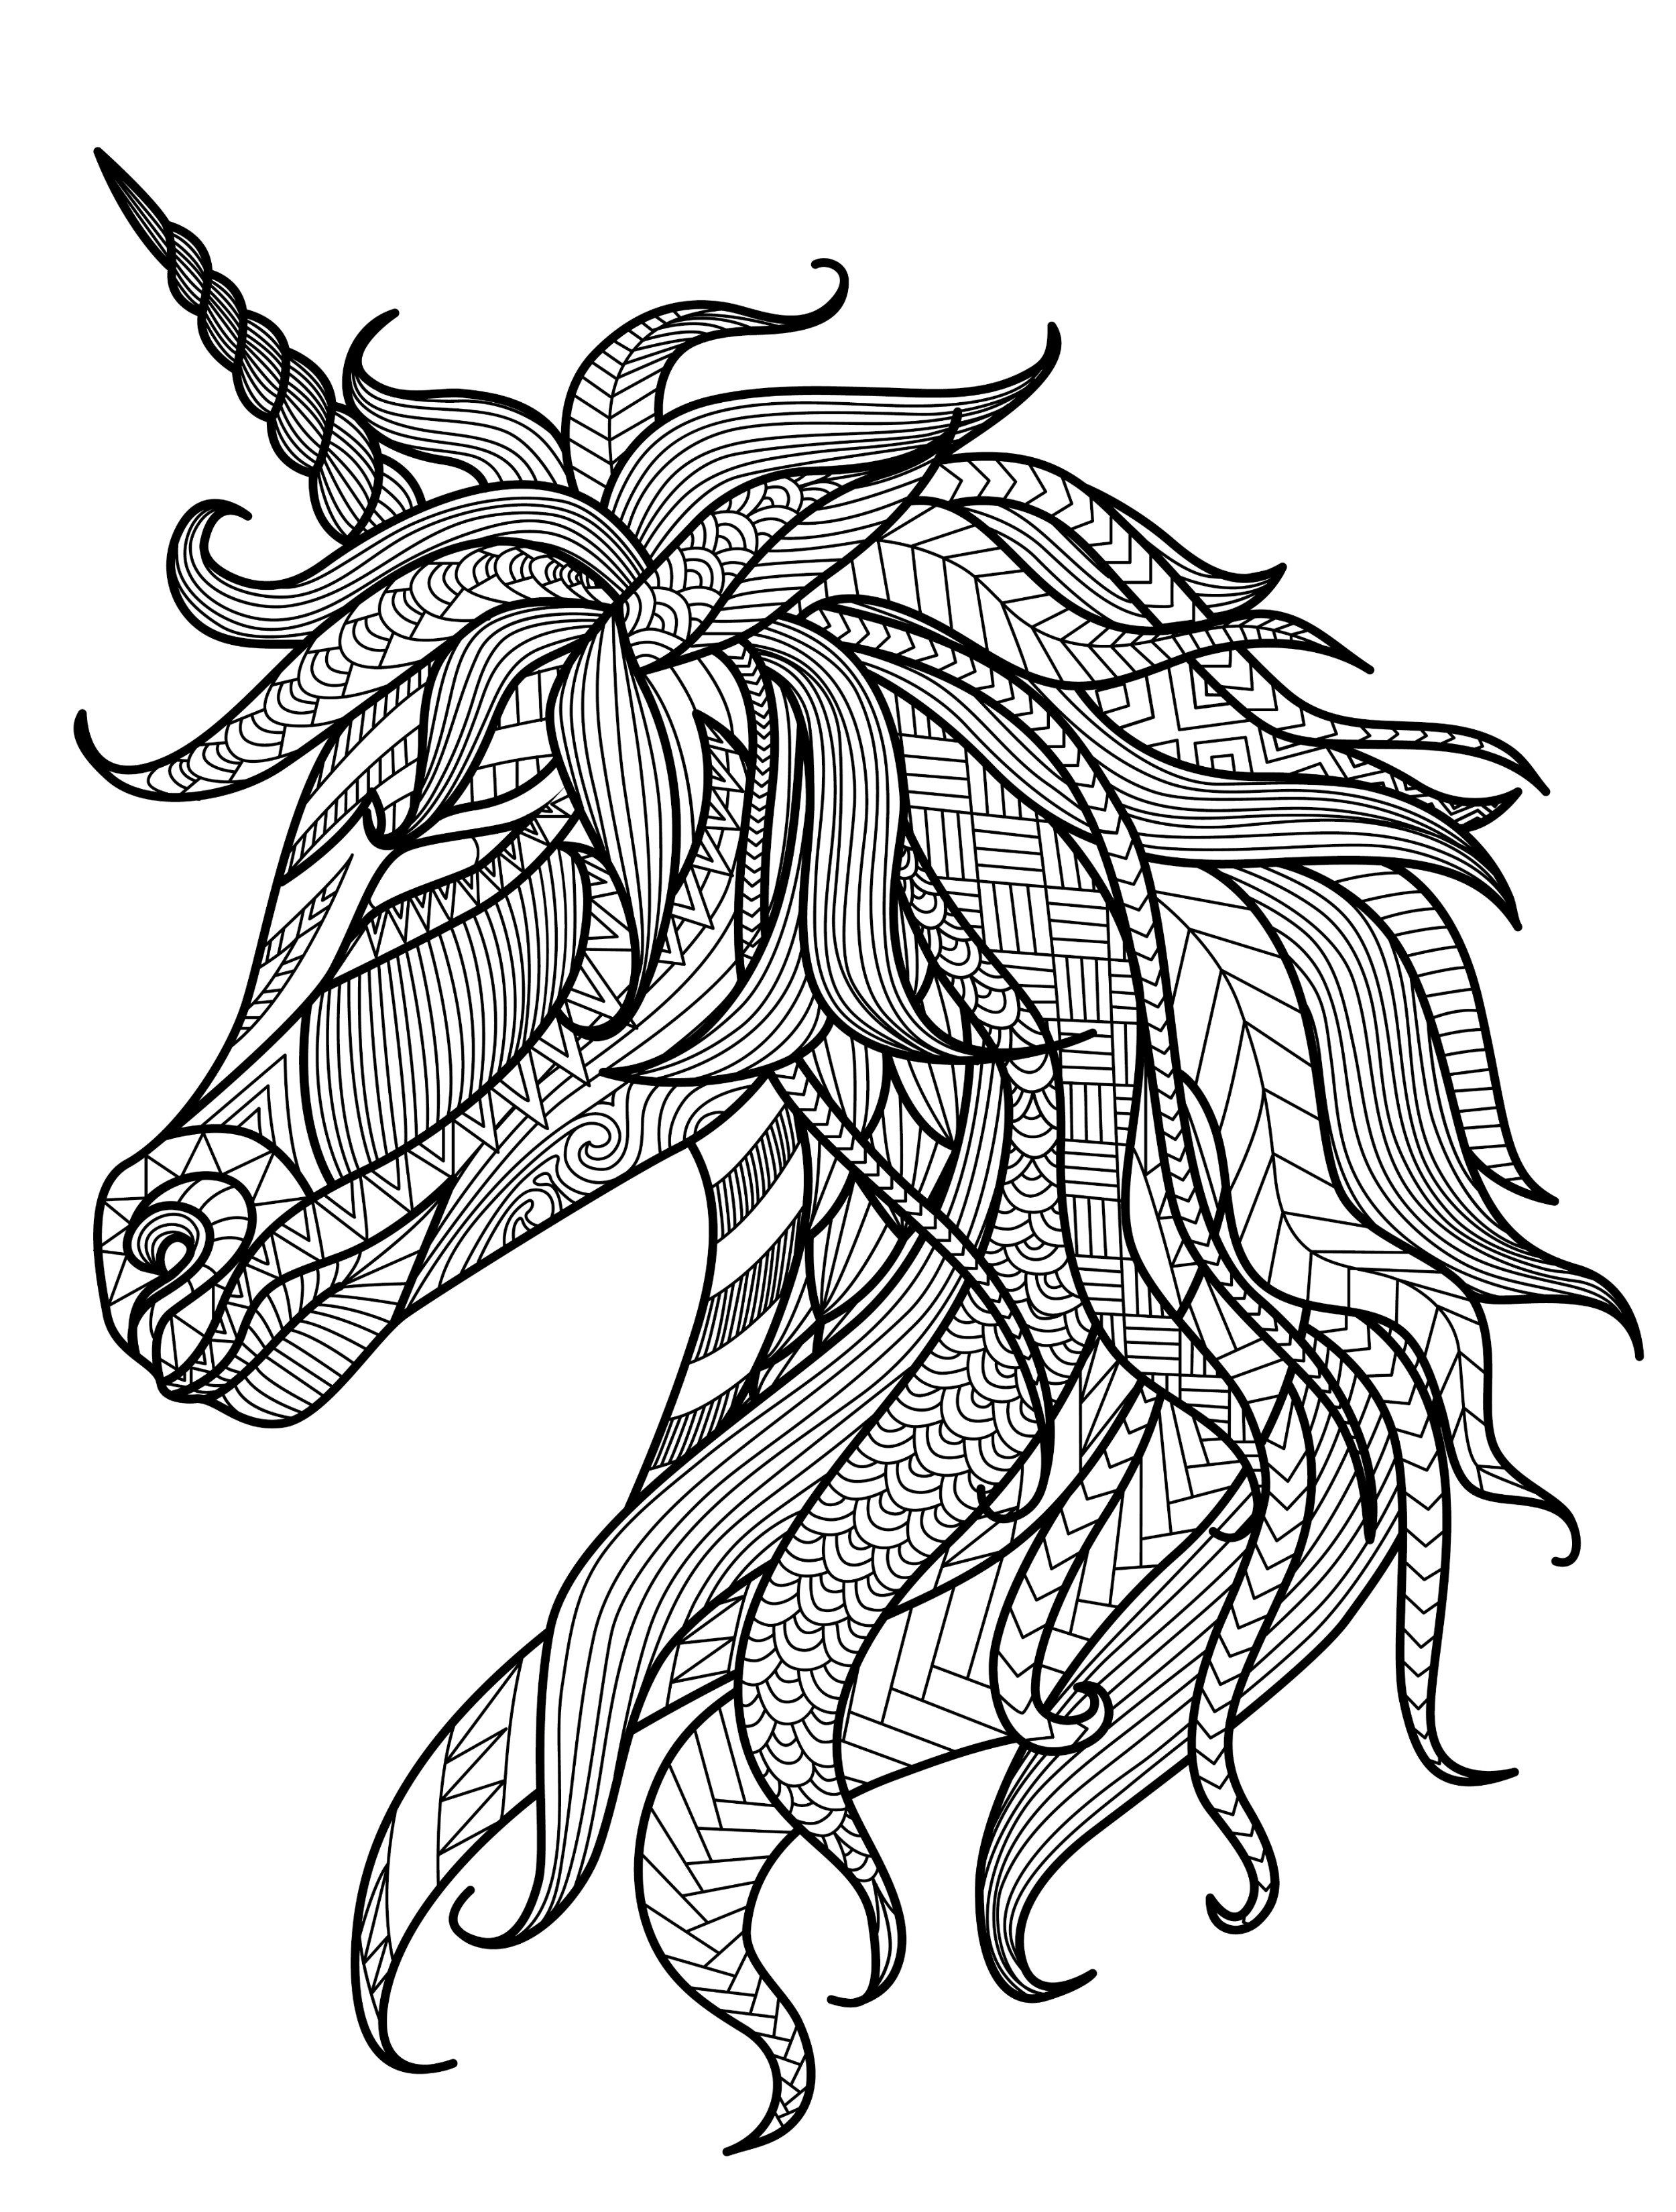 coloring pages for adults unicorn unicorn head simple unicorns adult coloring pages coloring pages unicorn for adults